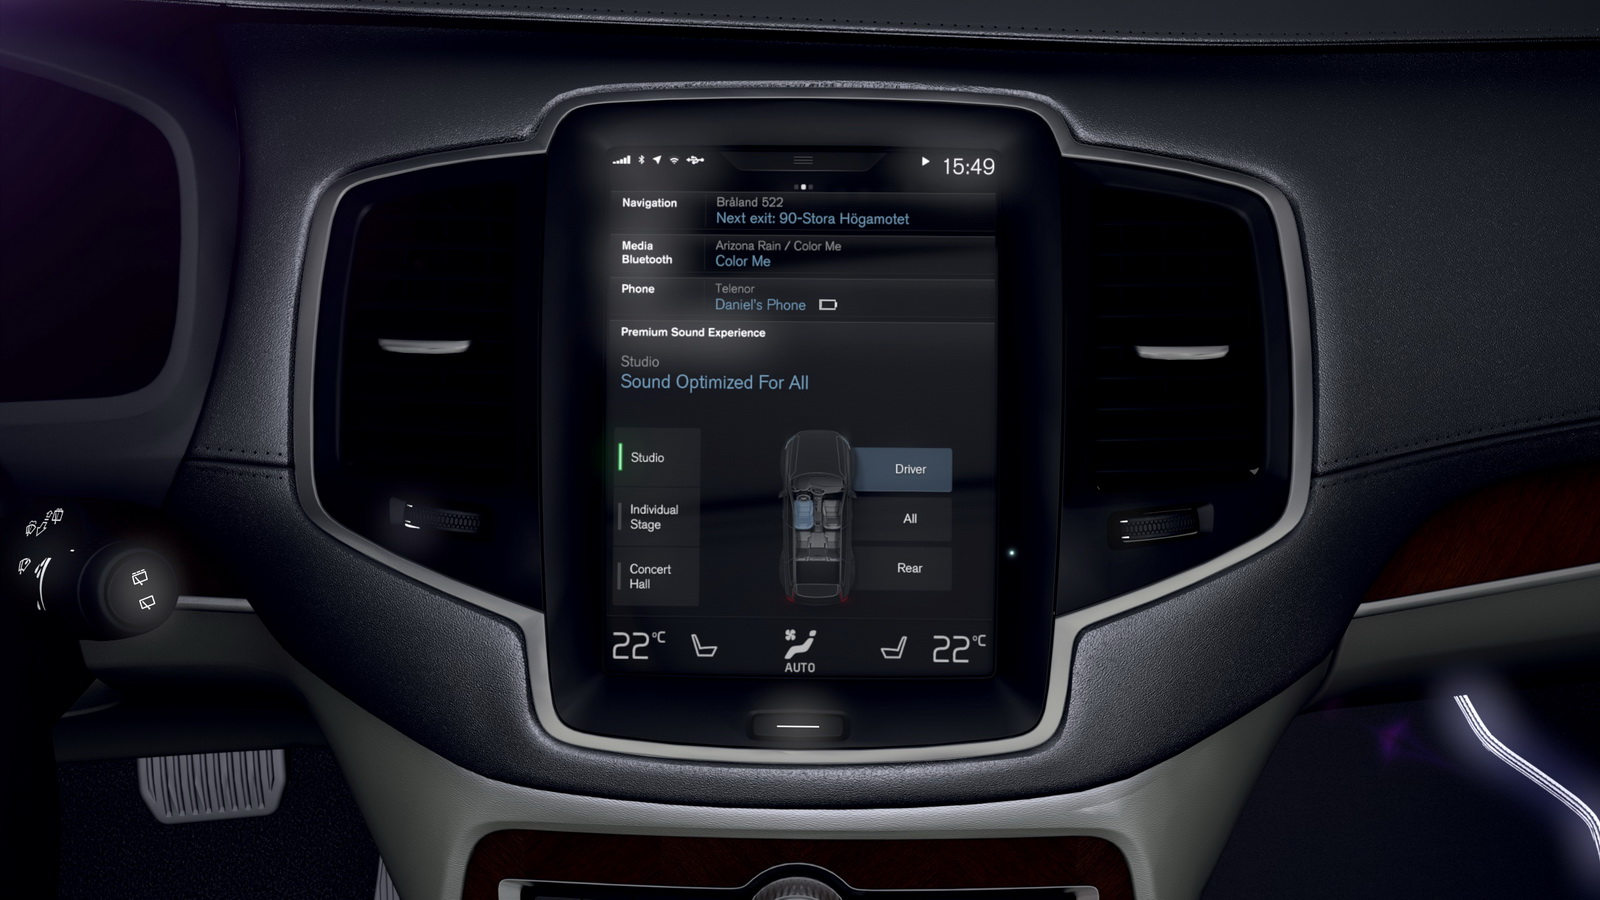 The all-new Volvo XC90, which will be revealed later this year, will offer drivers one of the top audio systems available in the automotive world after engineers at the Swedish car company joined forces with their counterparts at the renowned British audio equipment company Bowers & Wilkins.